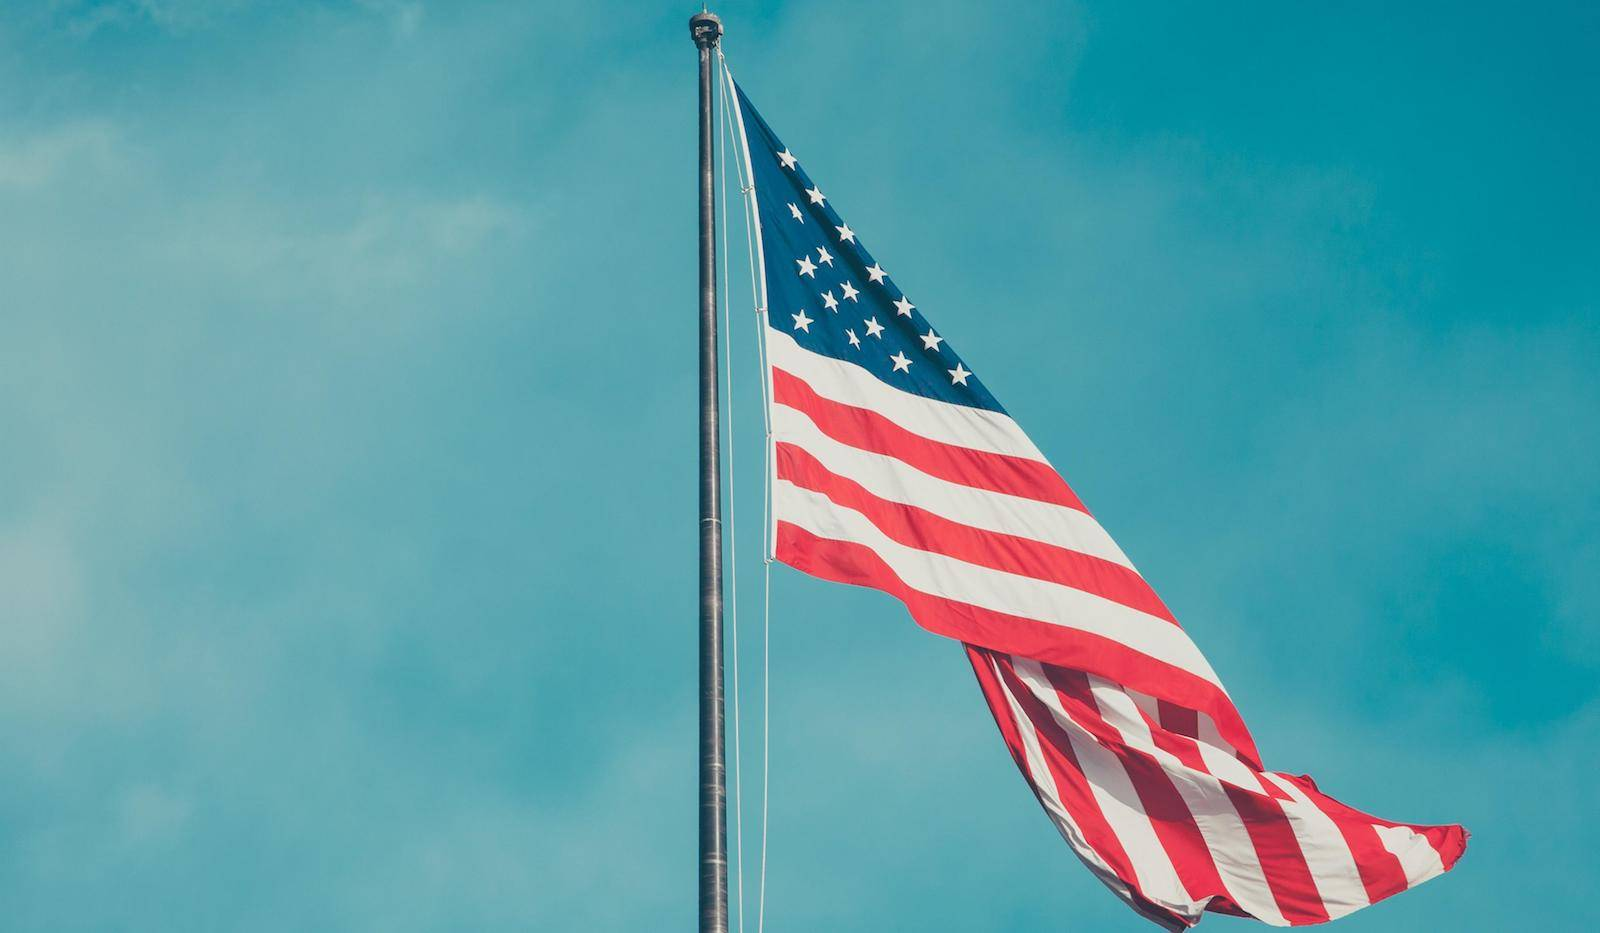 A photo of the American flag waving in the wind.